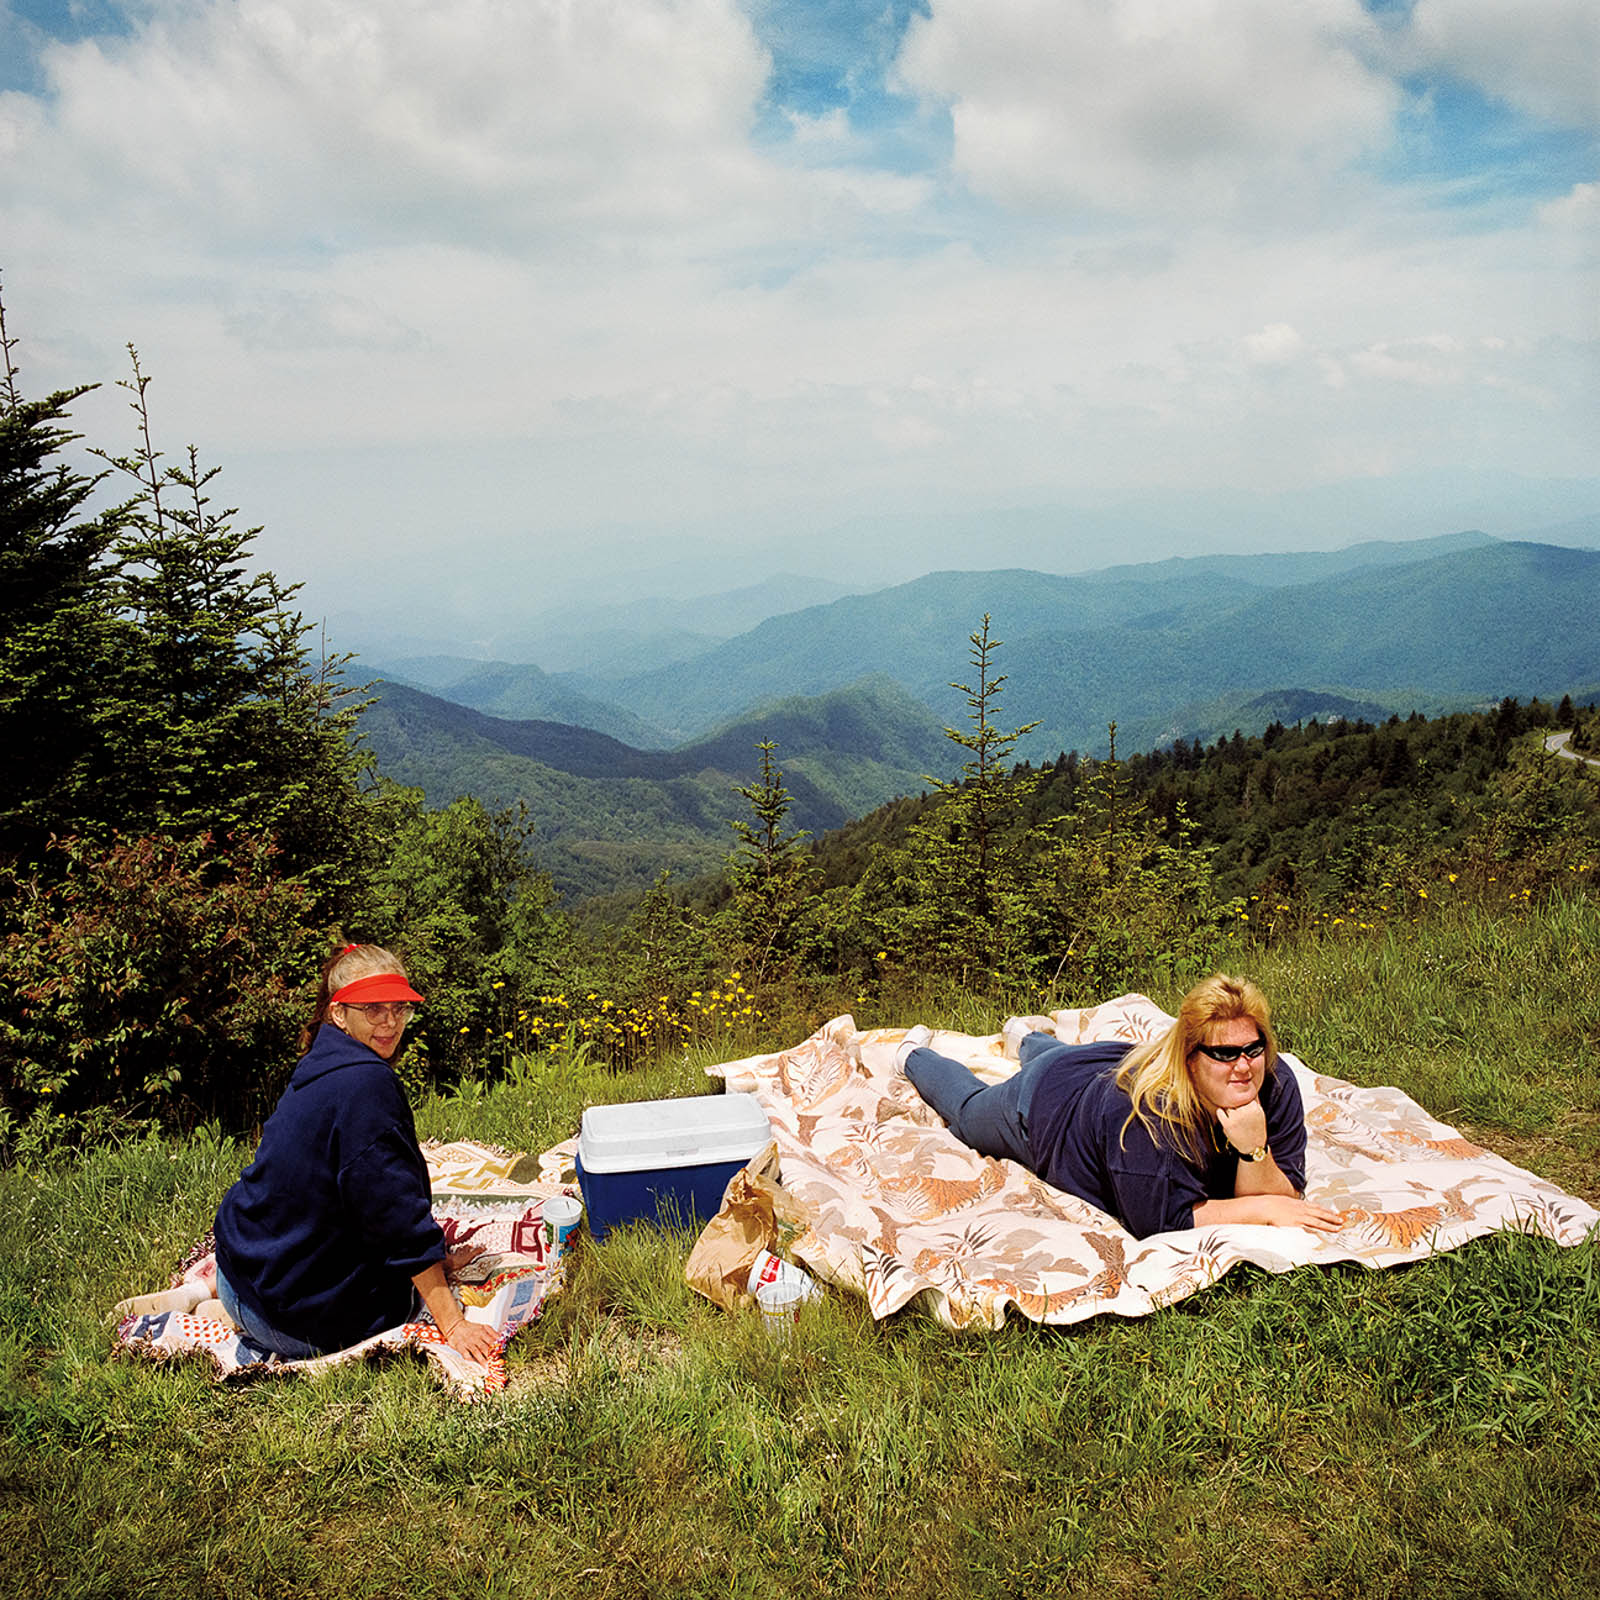 Two Women Picnicking in Great Smoky Mountains, North Carolina 1999